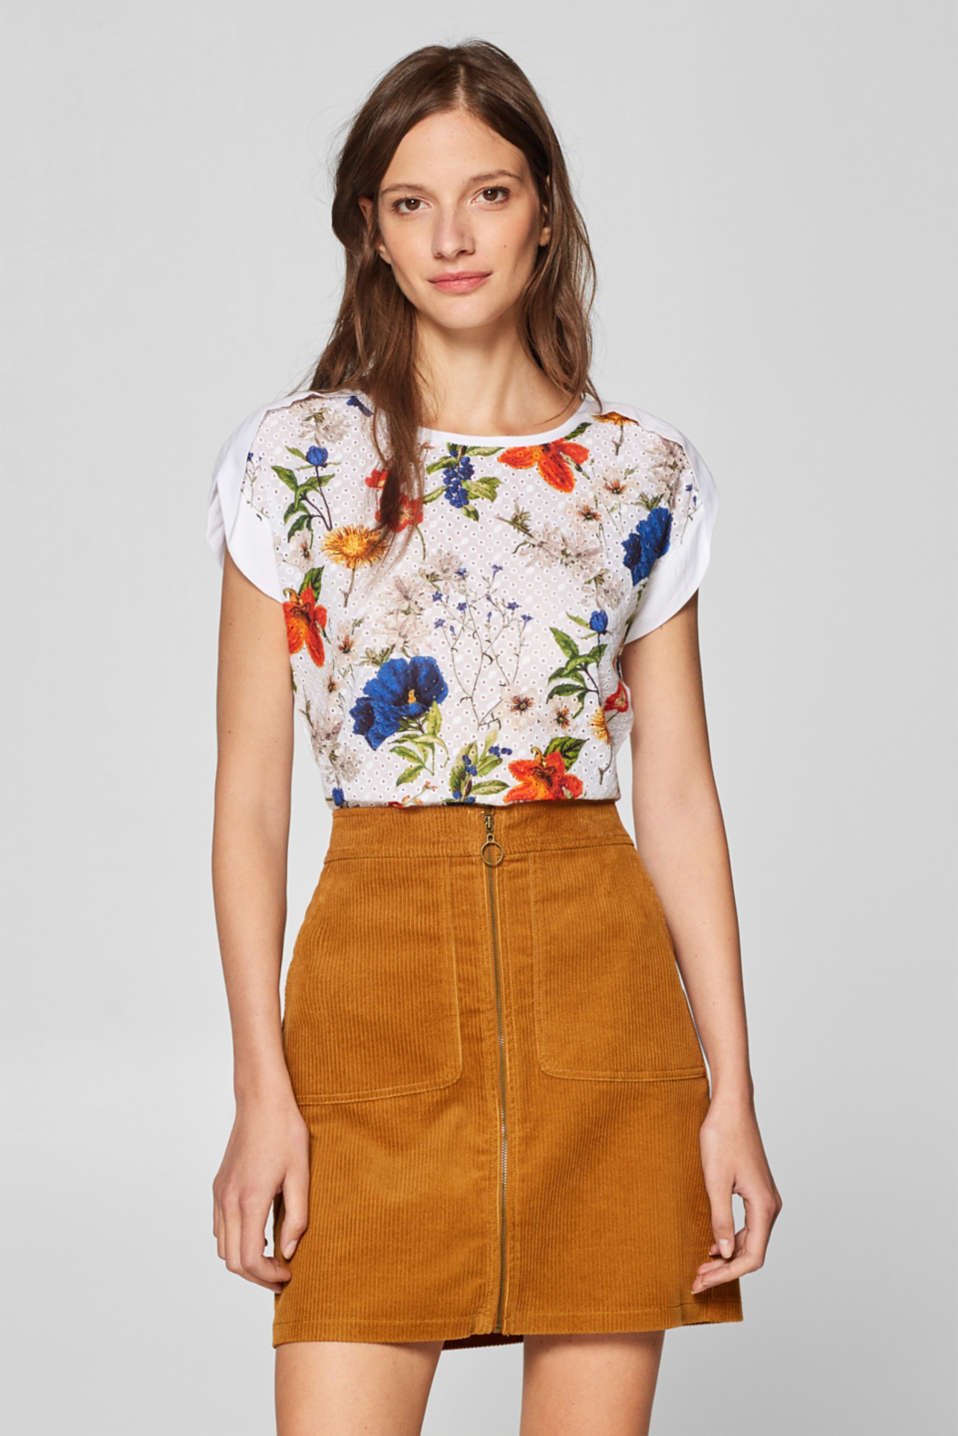 Esprit - Print blouse top with broderie anglaise